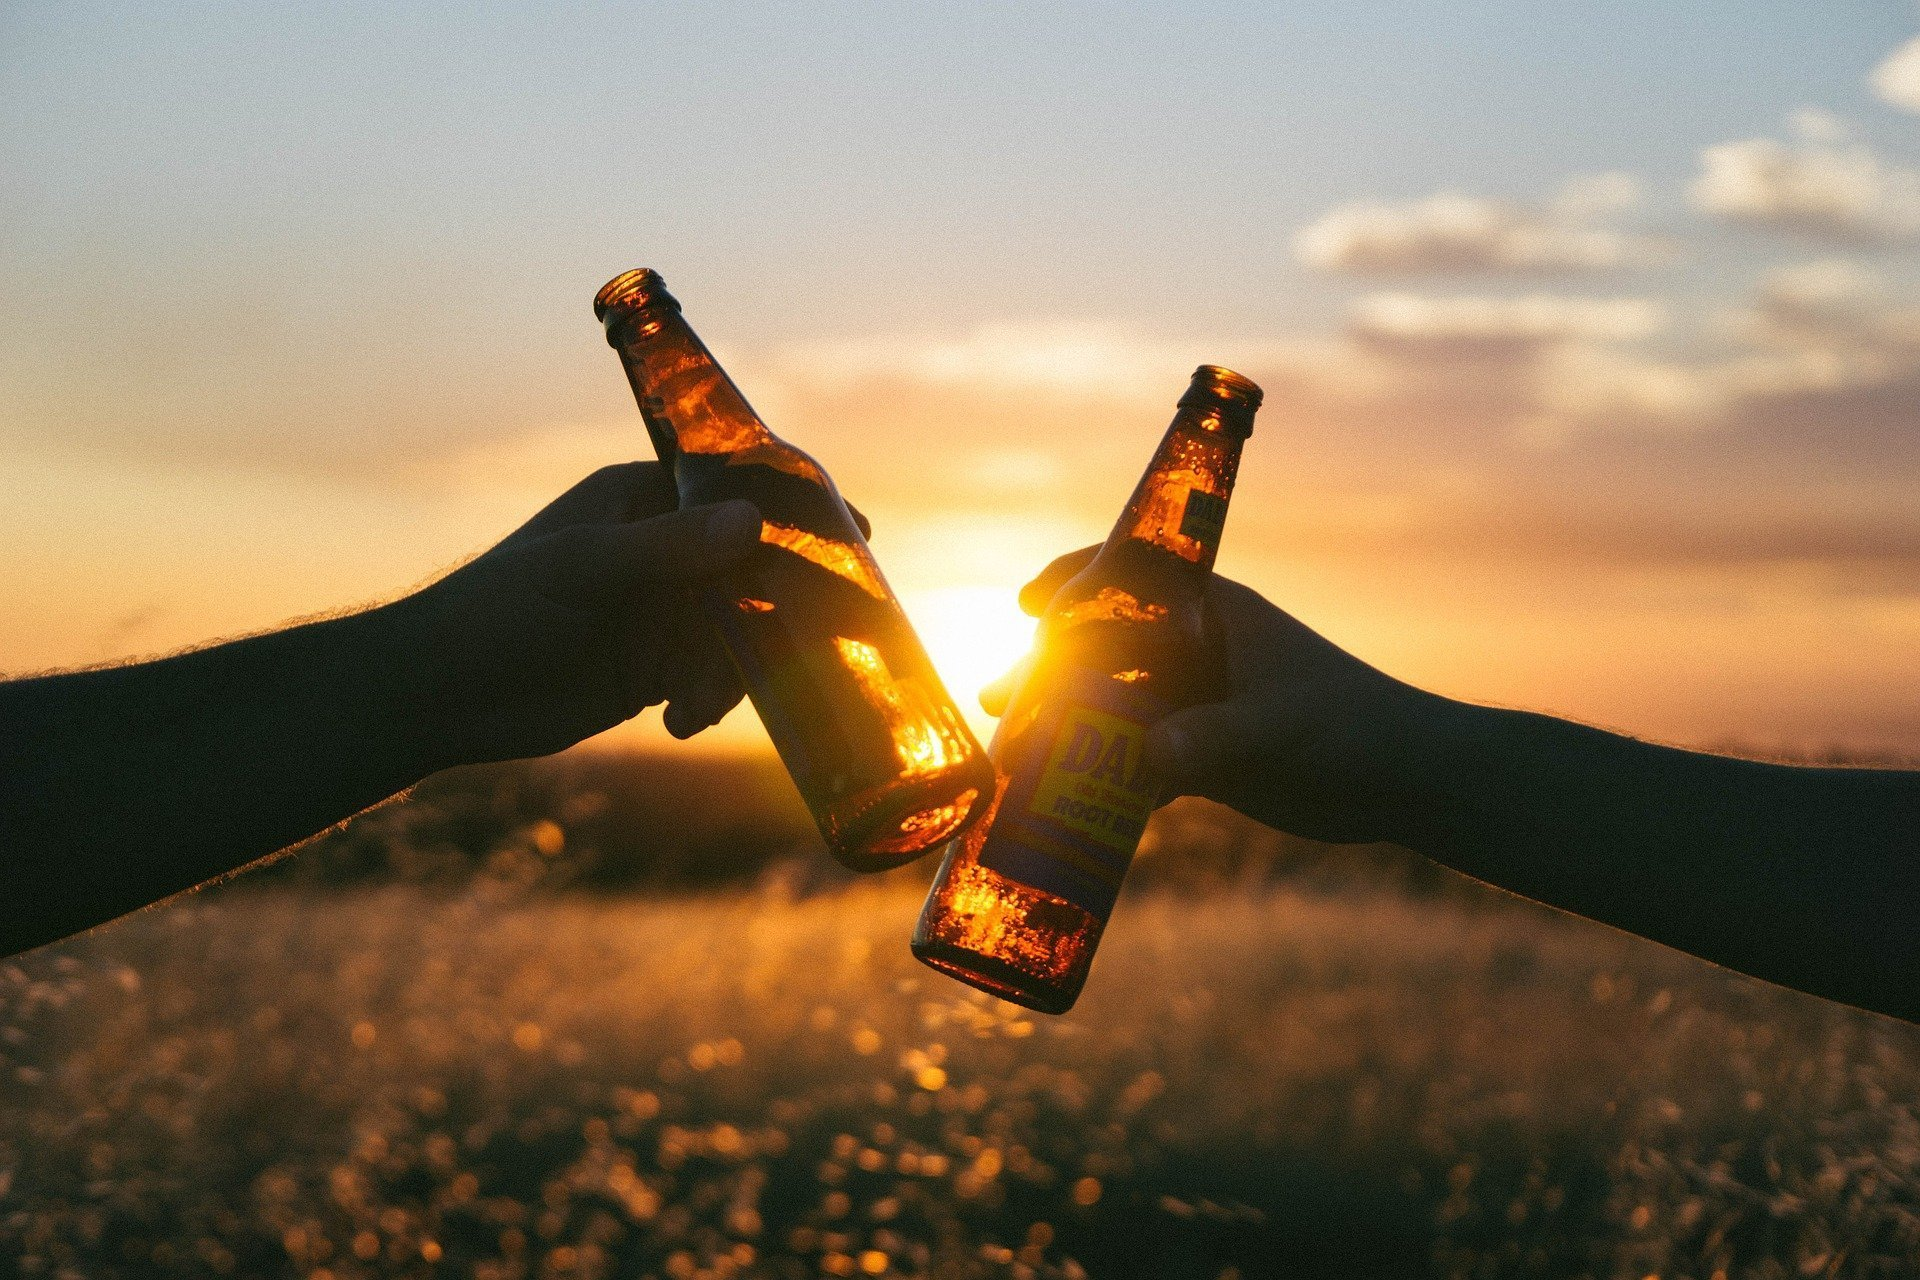 Clinking beer bottles with a sunset in the background. | Source: Pixabay